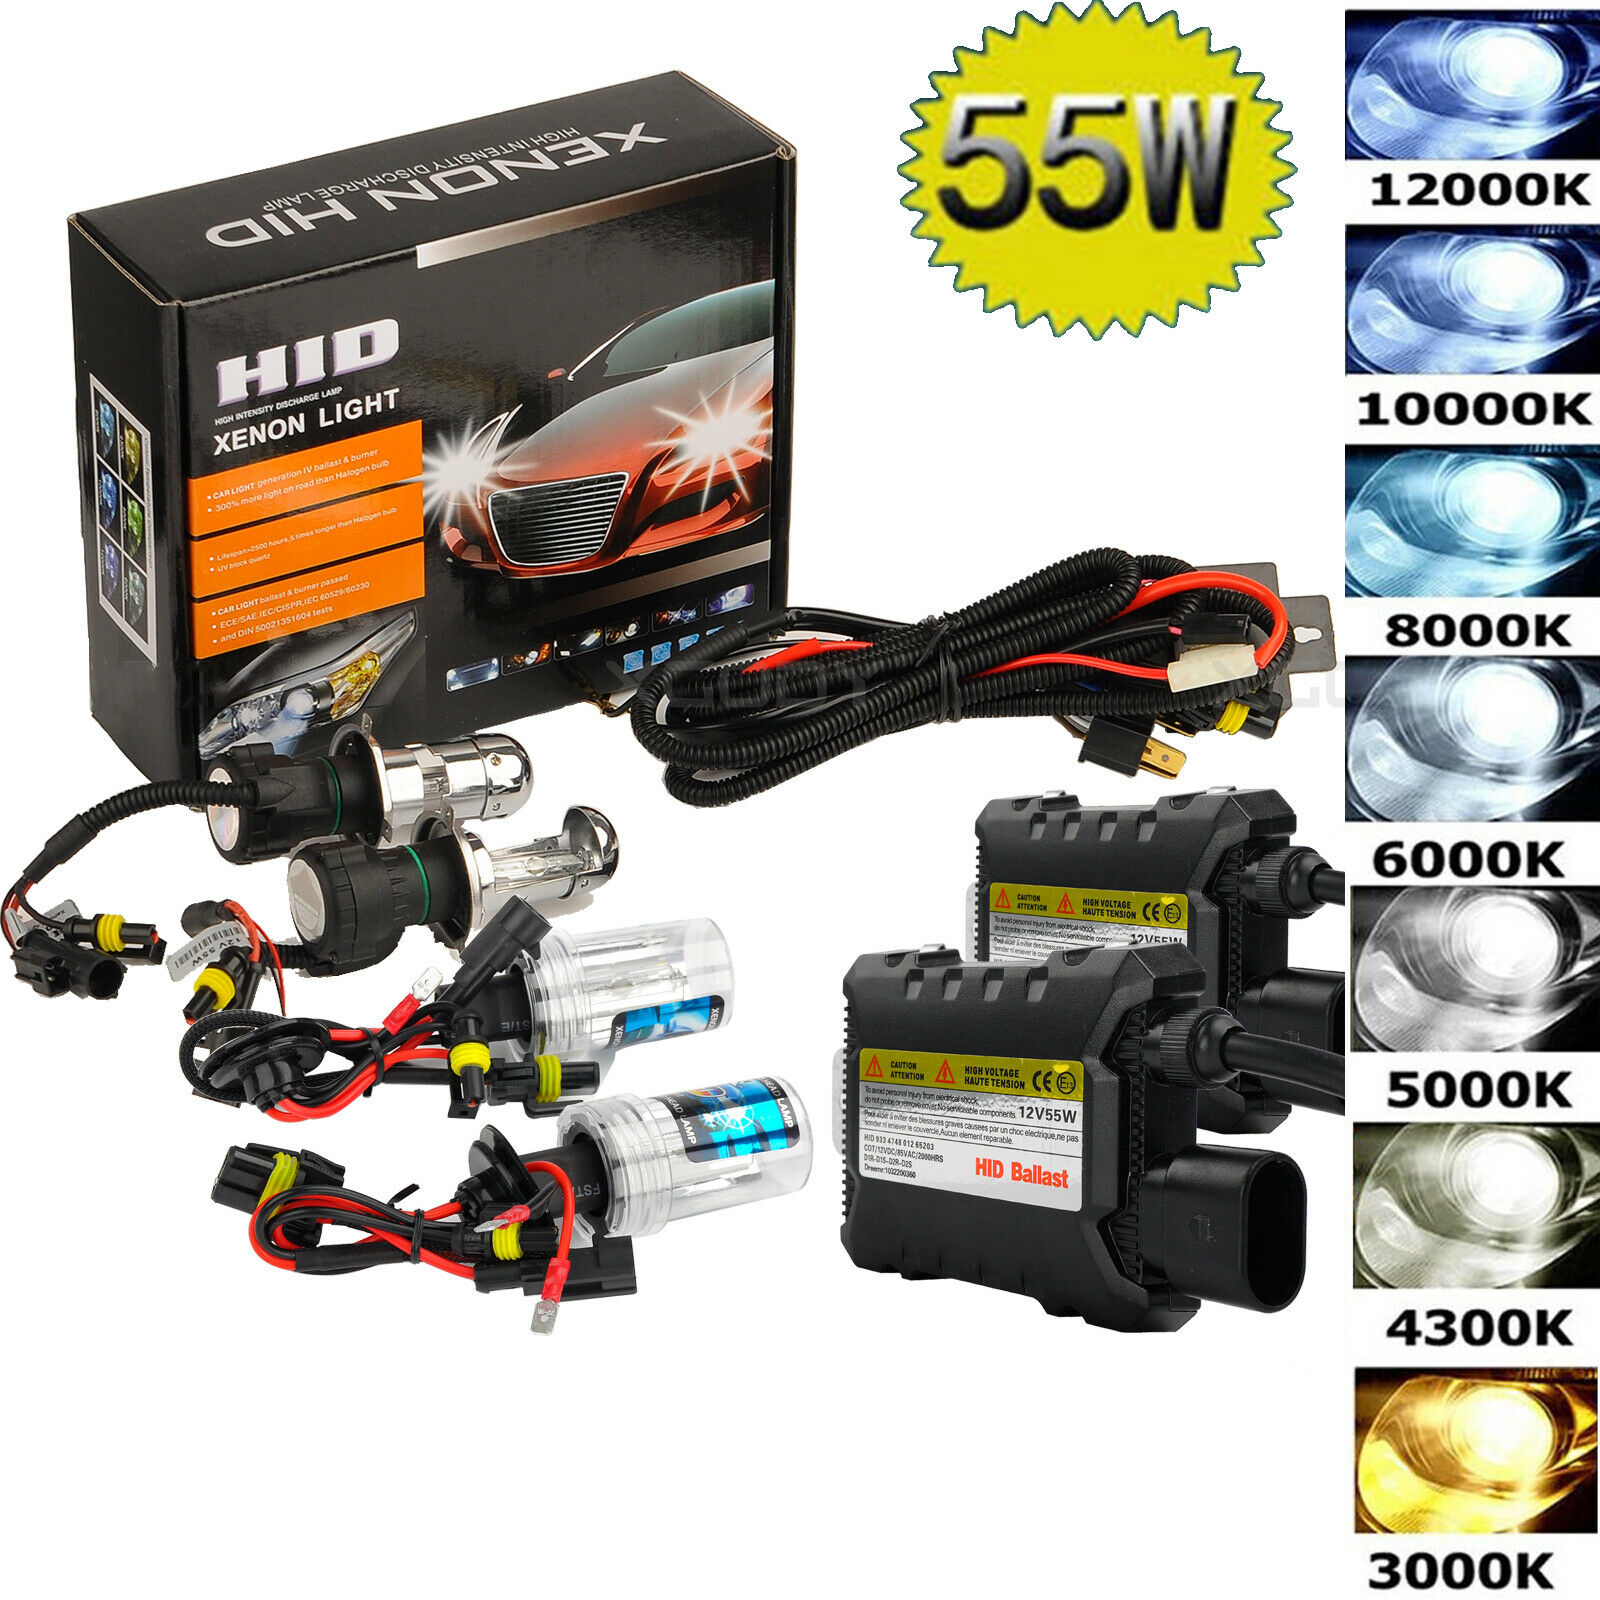 2pcs 55W Car HID LED Headlight 6000K/8000K/10000K/12000K Conversion KIT Bulbs H1 H3 H4 H7 H11 9005/HB3 9006/HB4 880/881 H13 H8